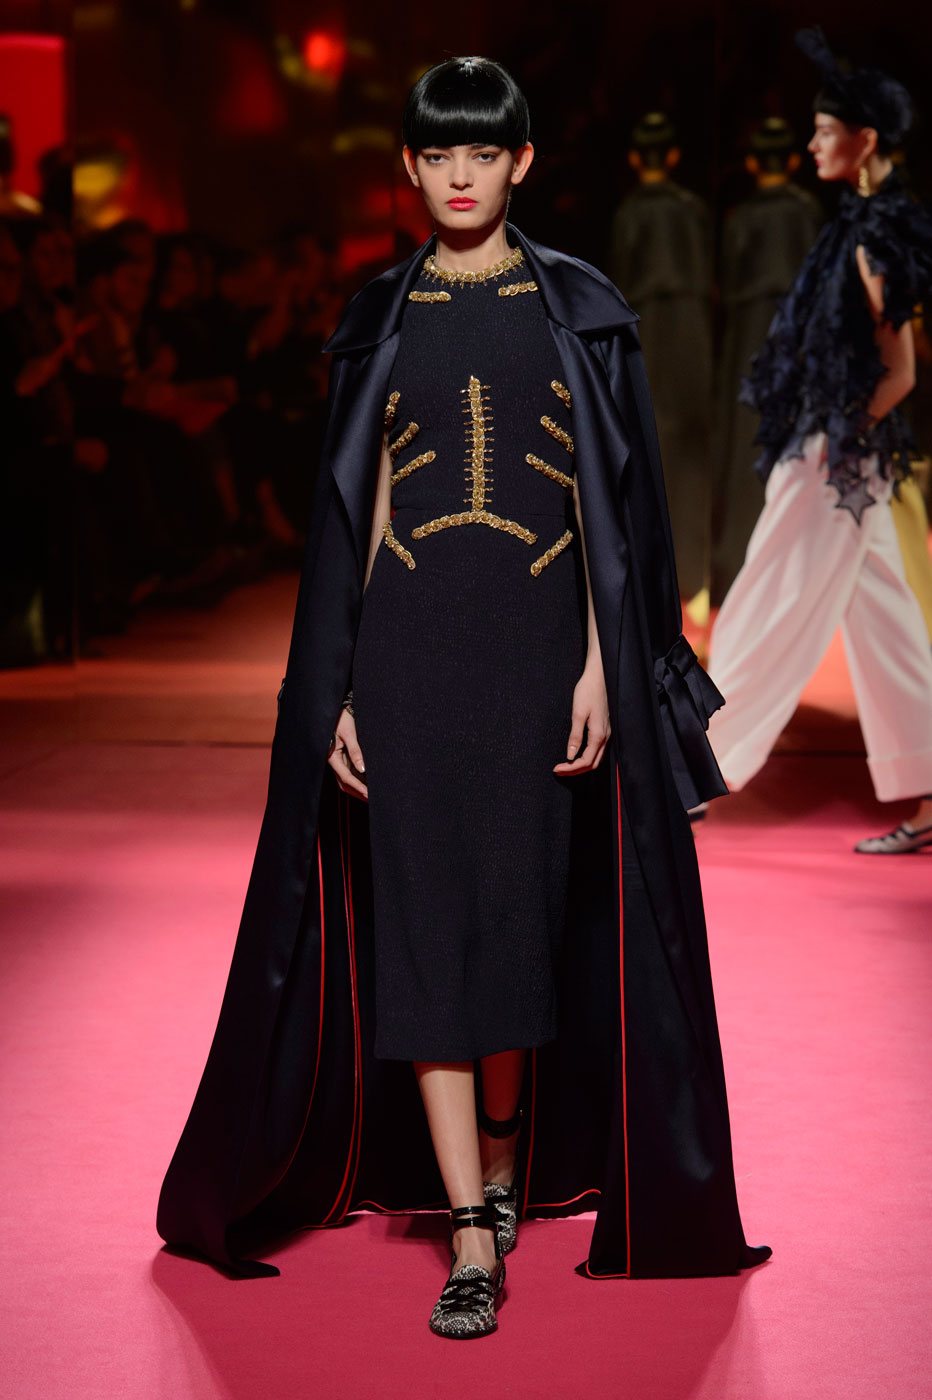 Schiaparelli-fashion-runway-show-haute-couture-paris-spring-summer-2015-the-impression-13